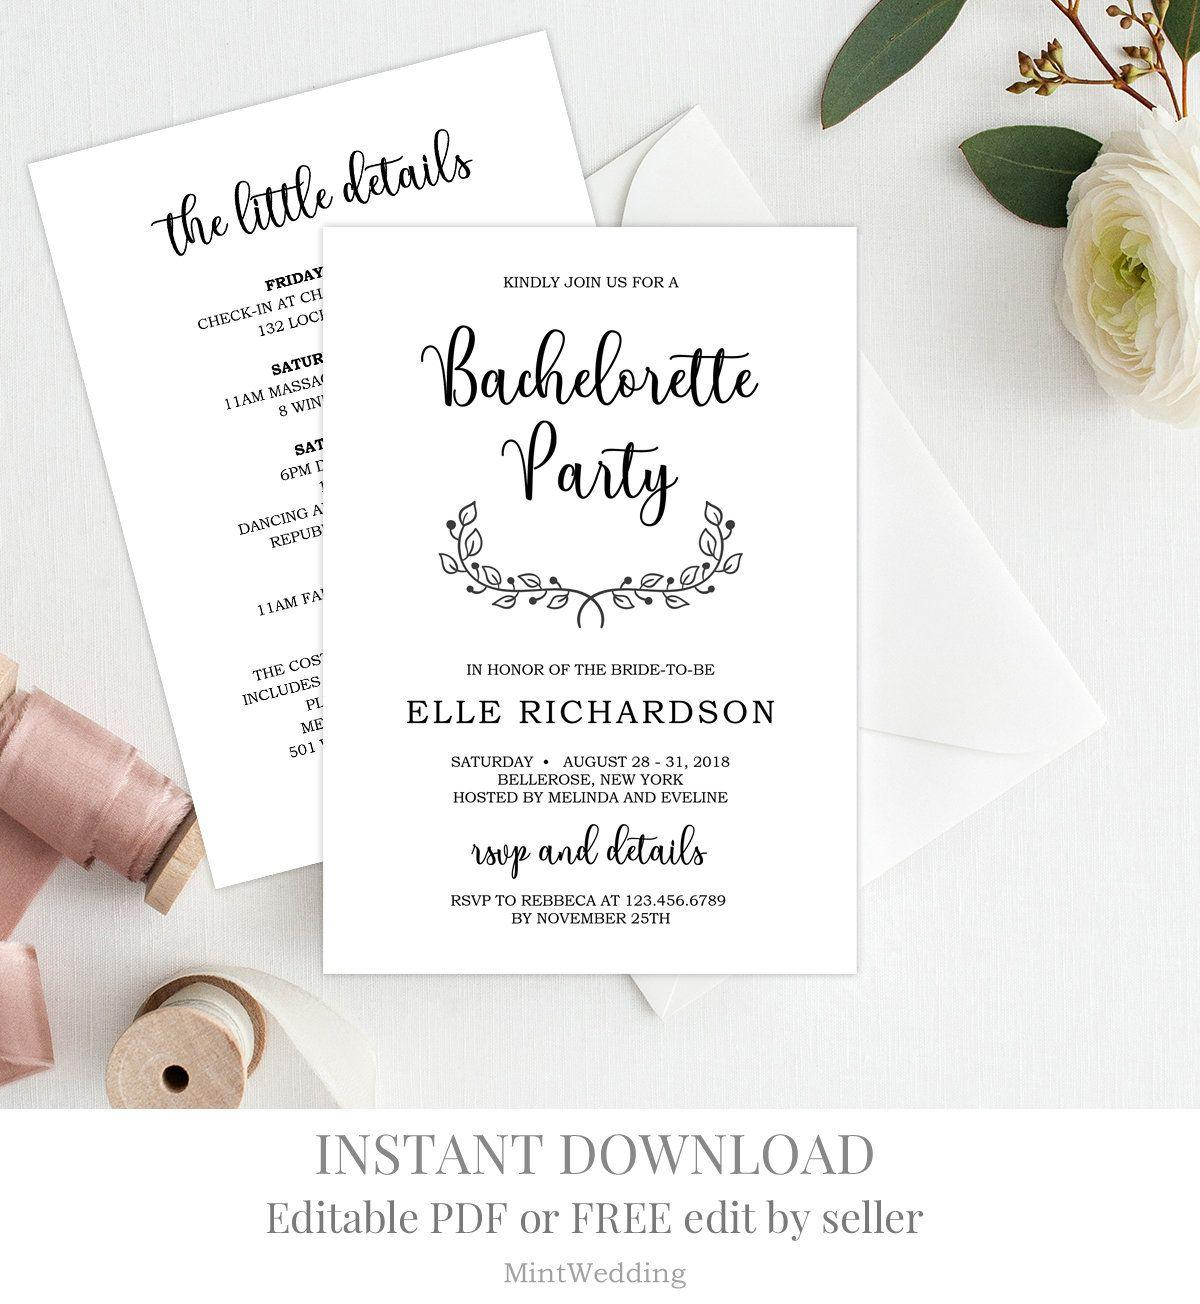 Bachelorette Weekend Invitation Template